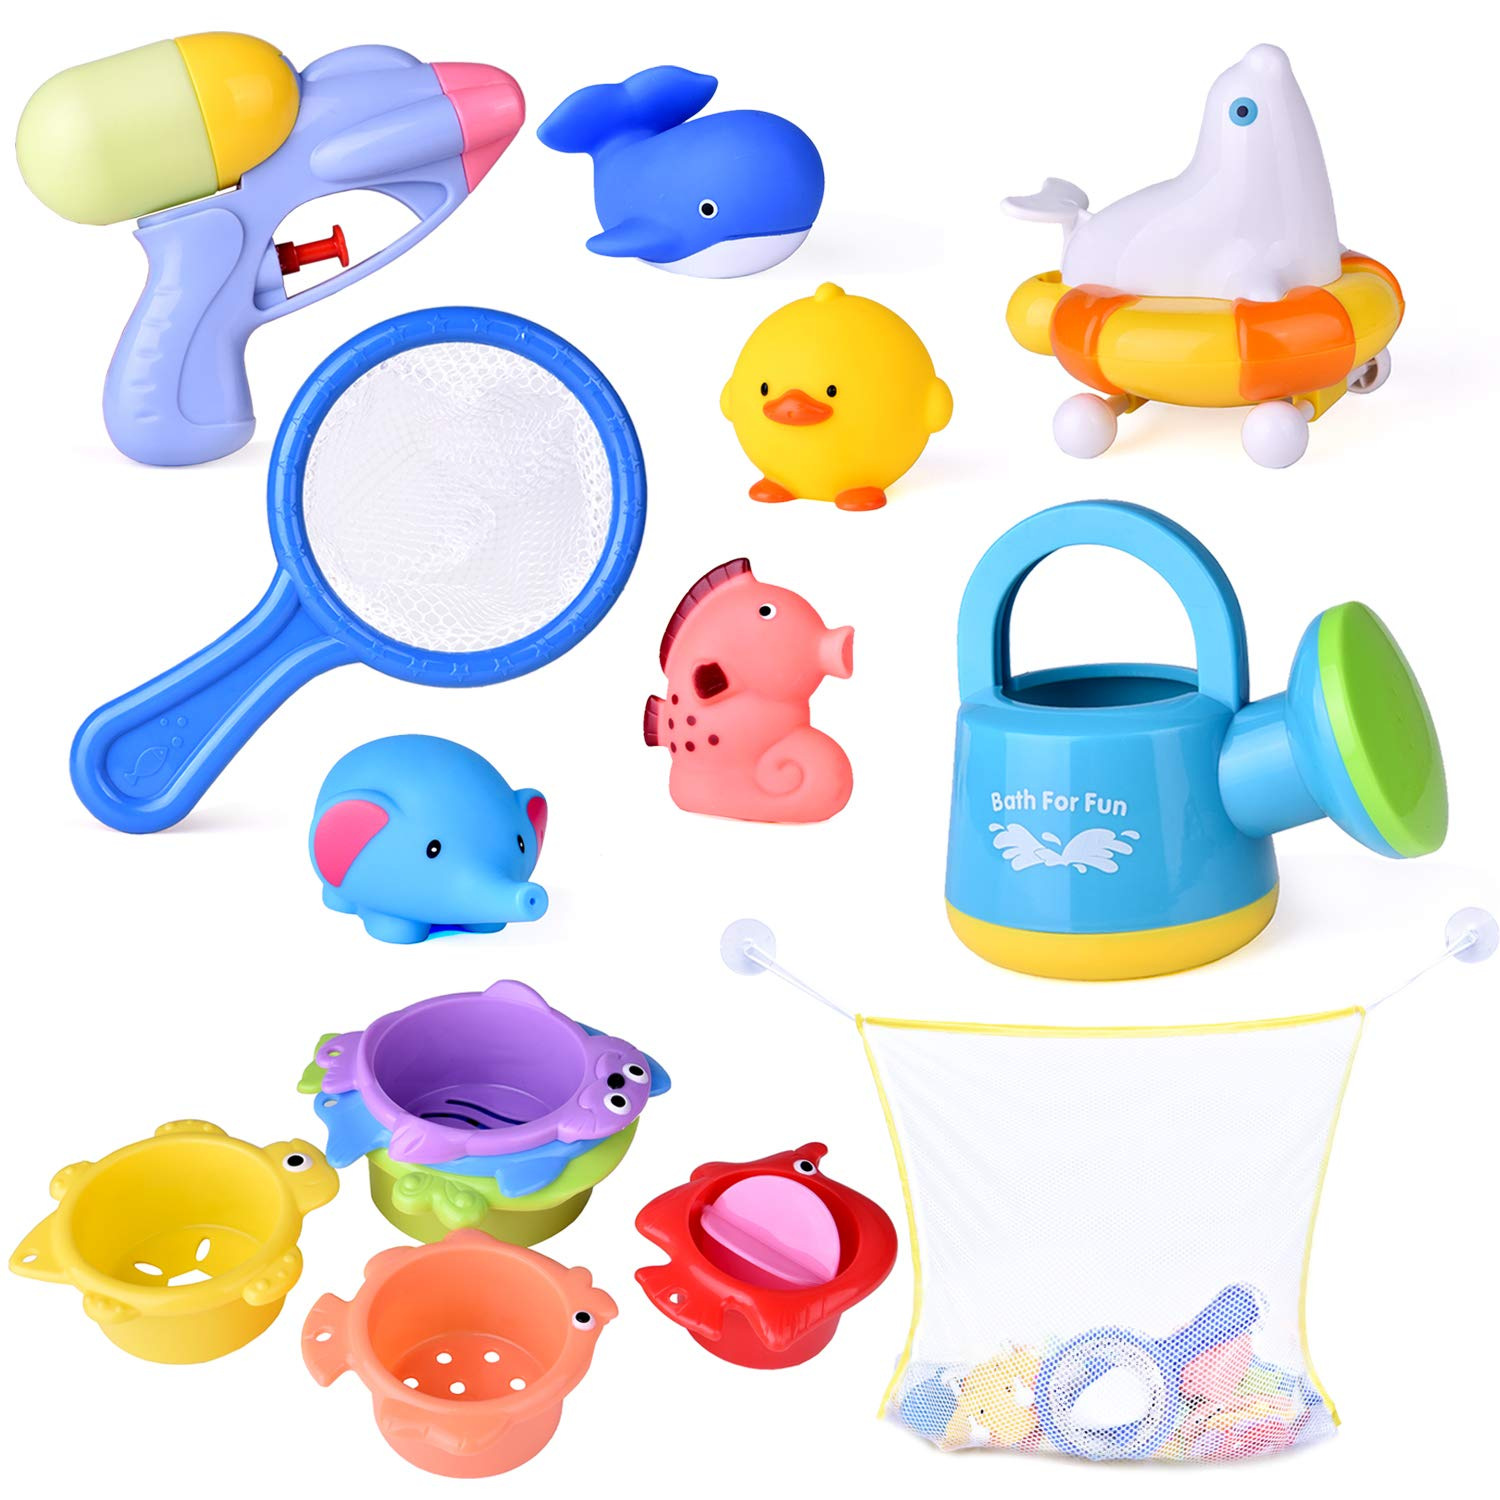 FUN LITTLE TOYS 9 PCs Baby Bath Toys with Ocean Animals Bath Squirters Toys, Stacking Cups, Water Blaster Toys, Watering Can, Fishing Net and Bath Toy Organizer Birthday Gift for Kids